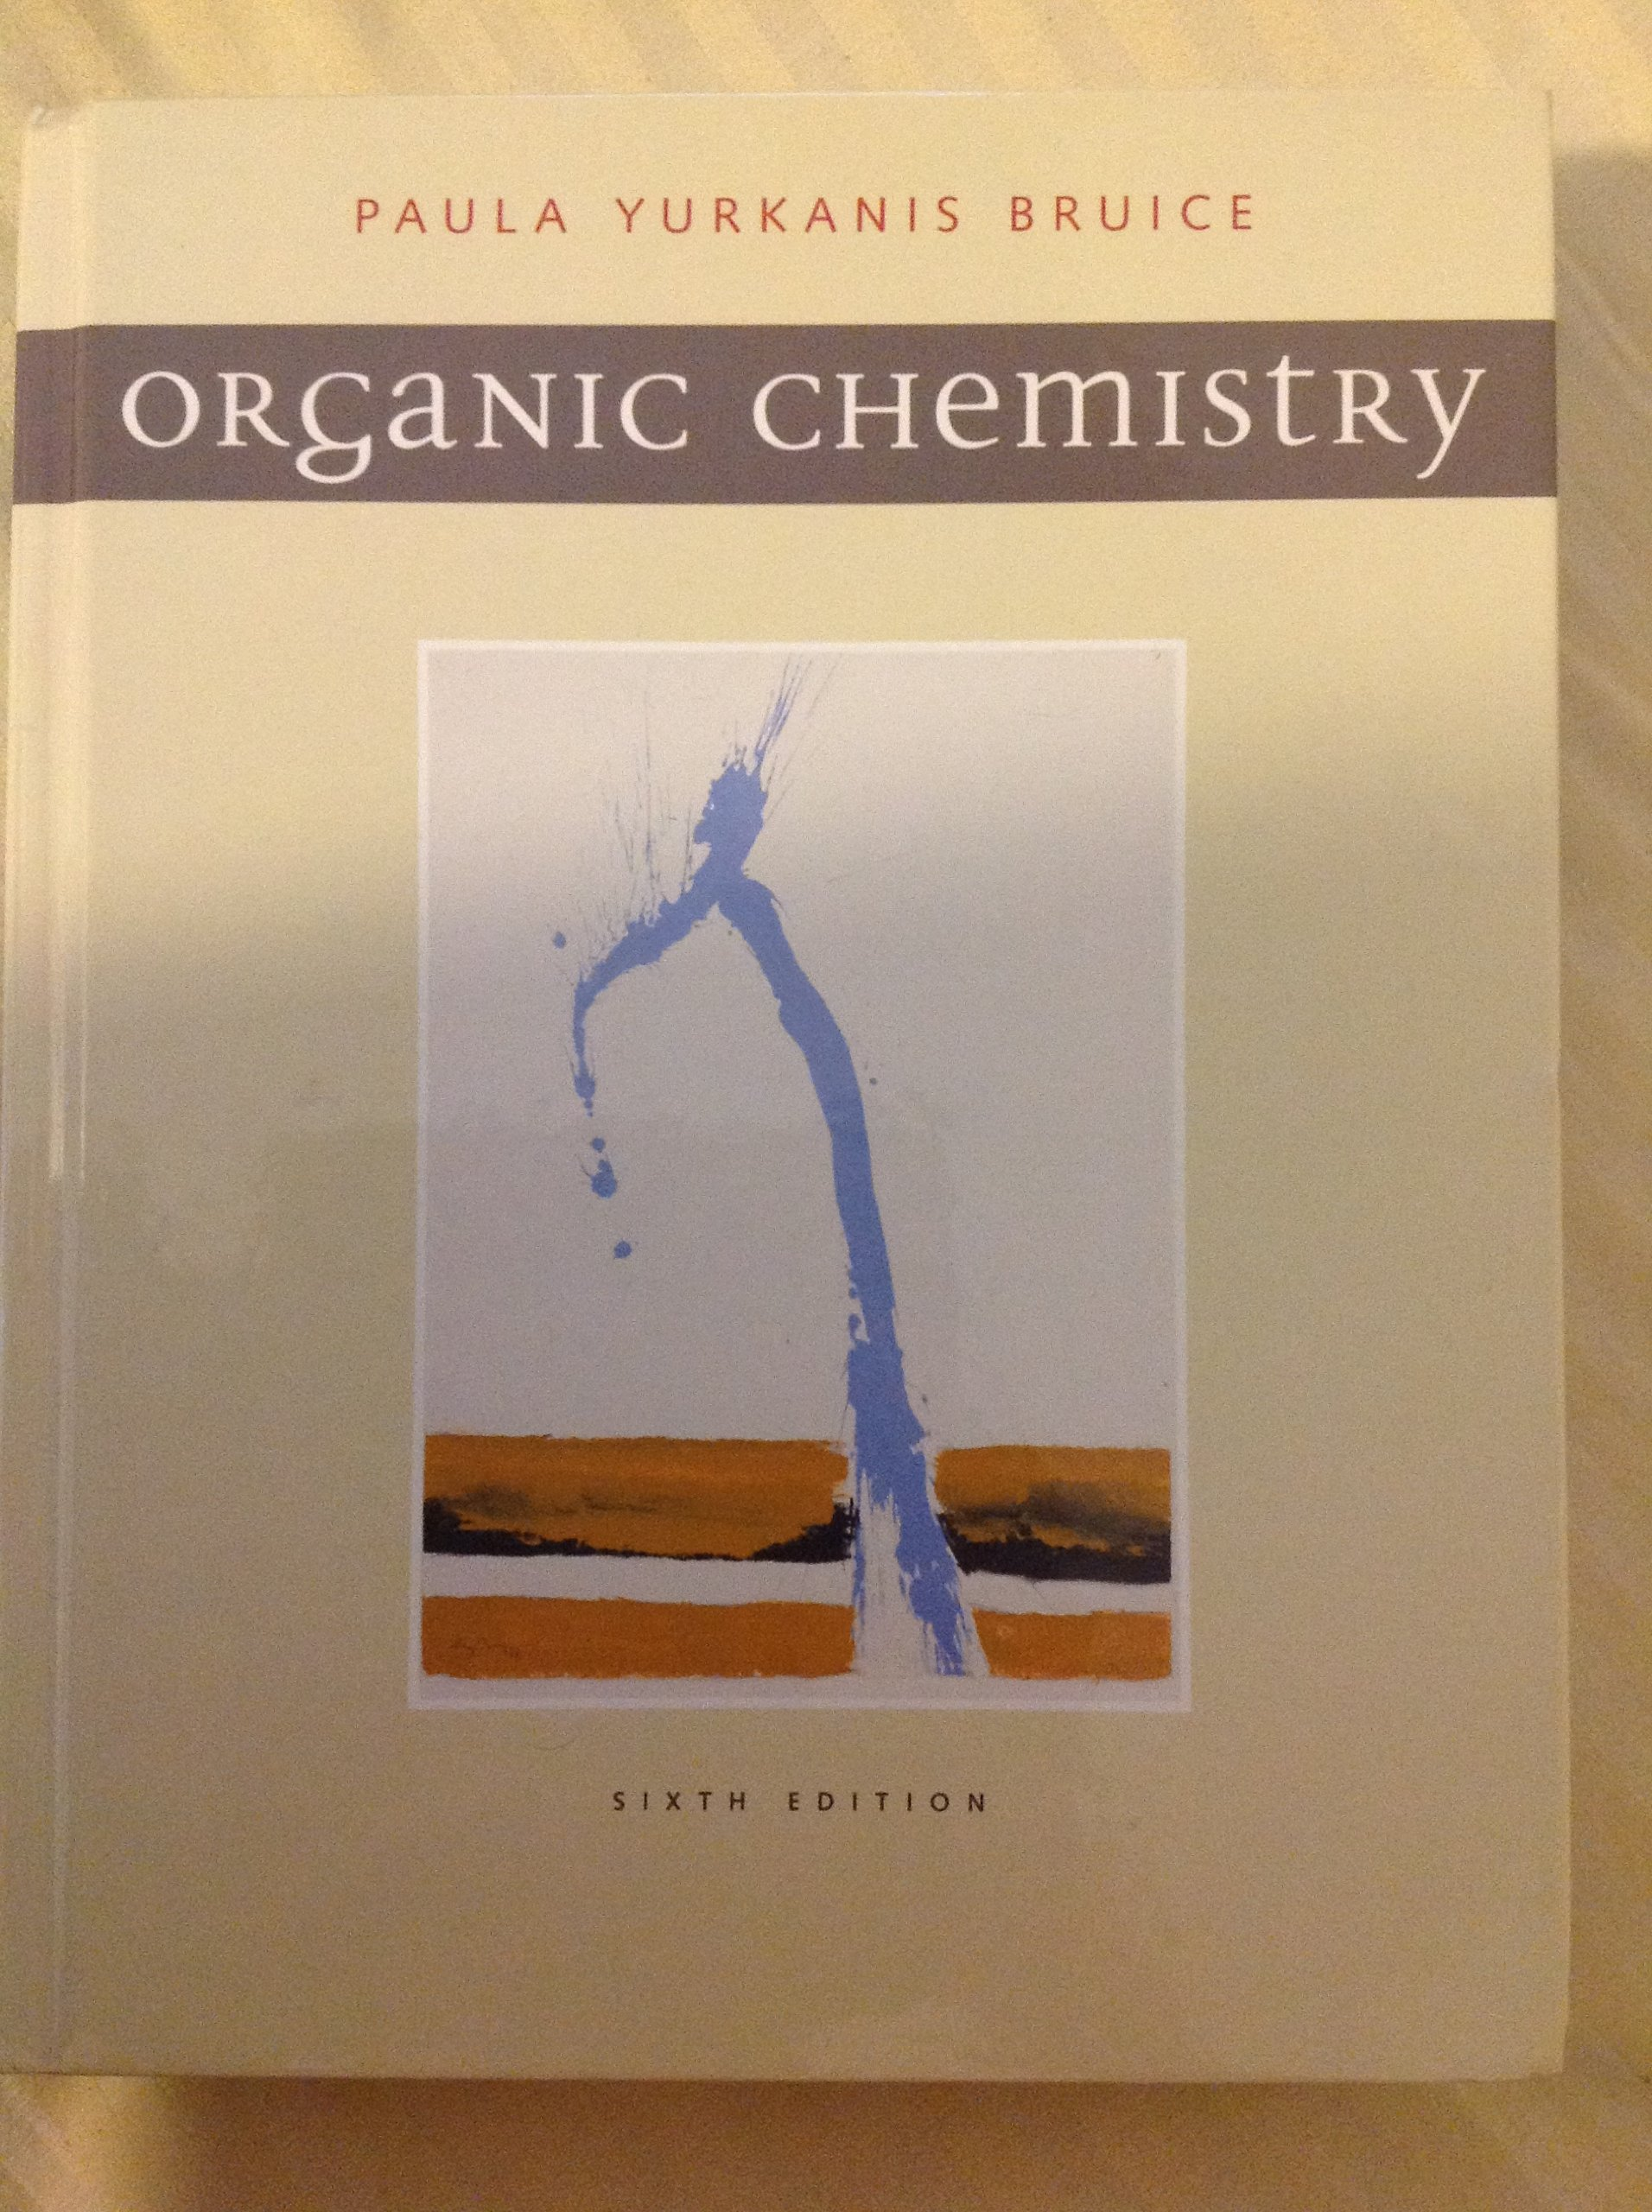 Amazon paula yurkanis bruice books biography blog organic chemistry 6th edition hardcover fandeluxe Choice Image